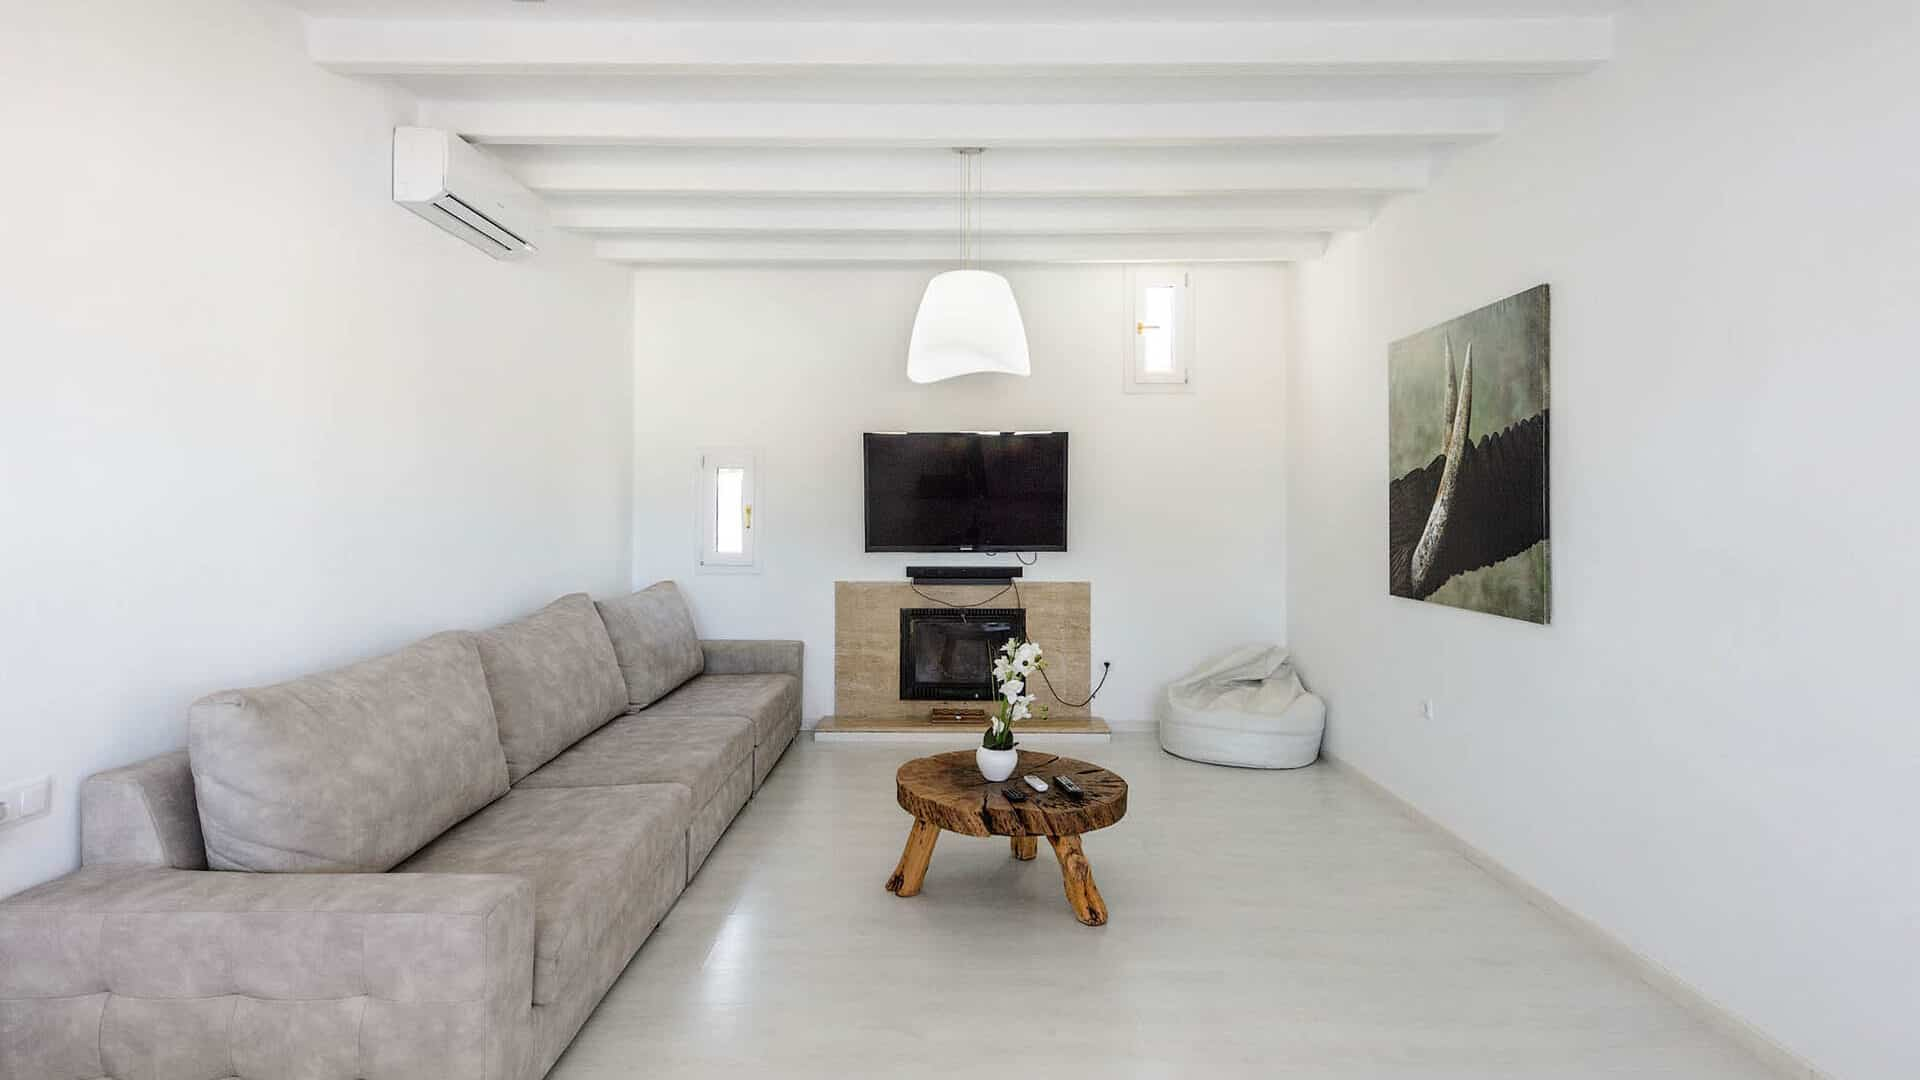 St Eulalia 7 bedroom holiday villa for rent